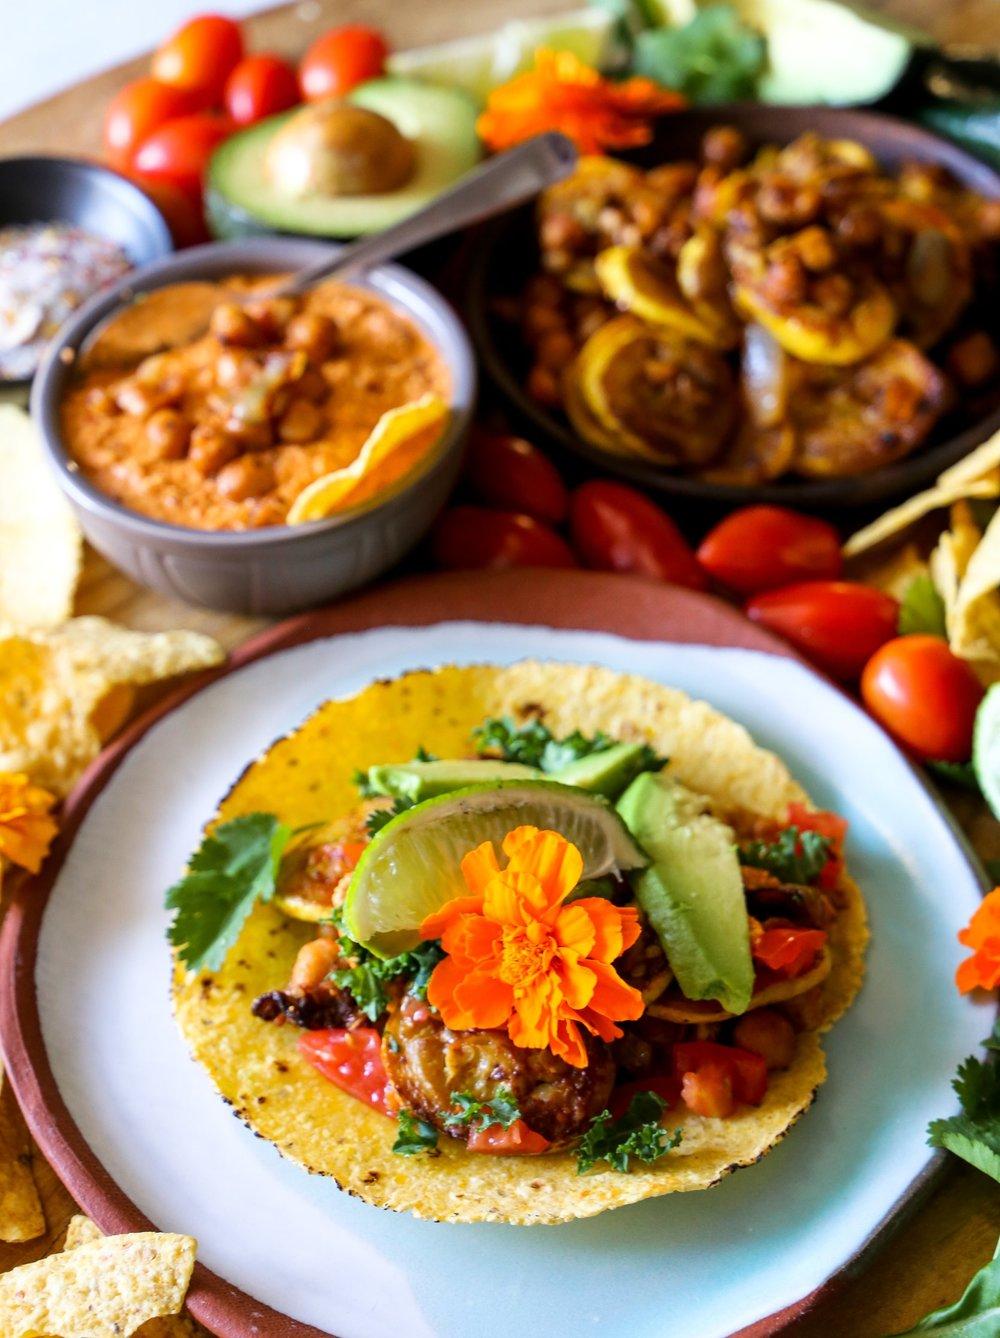 Smoked Veggie Tacos - So good you won't even miss the meat. Or the cheese, because PLOT TWIST, these are vegan!